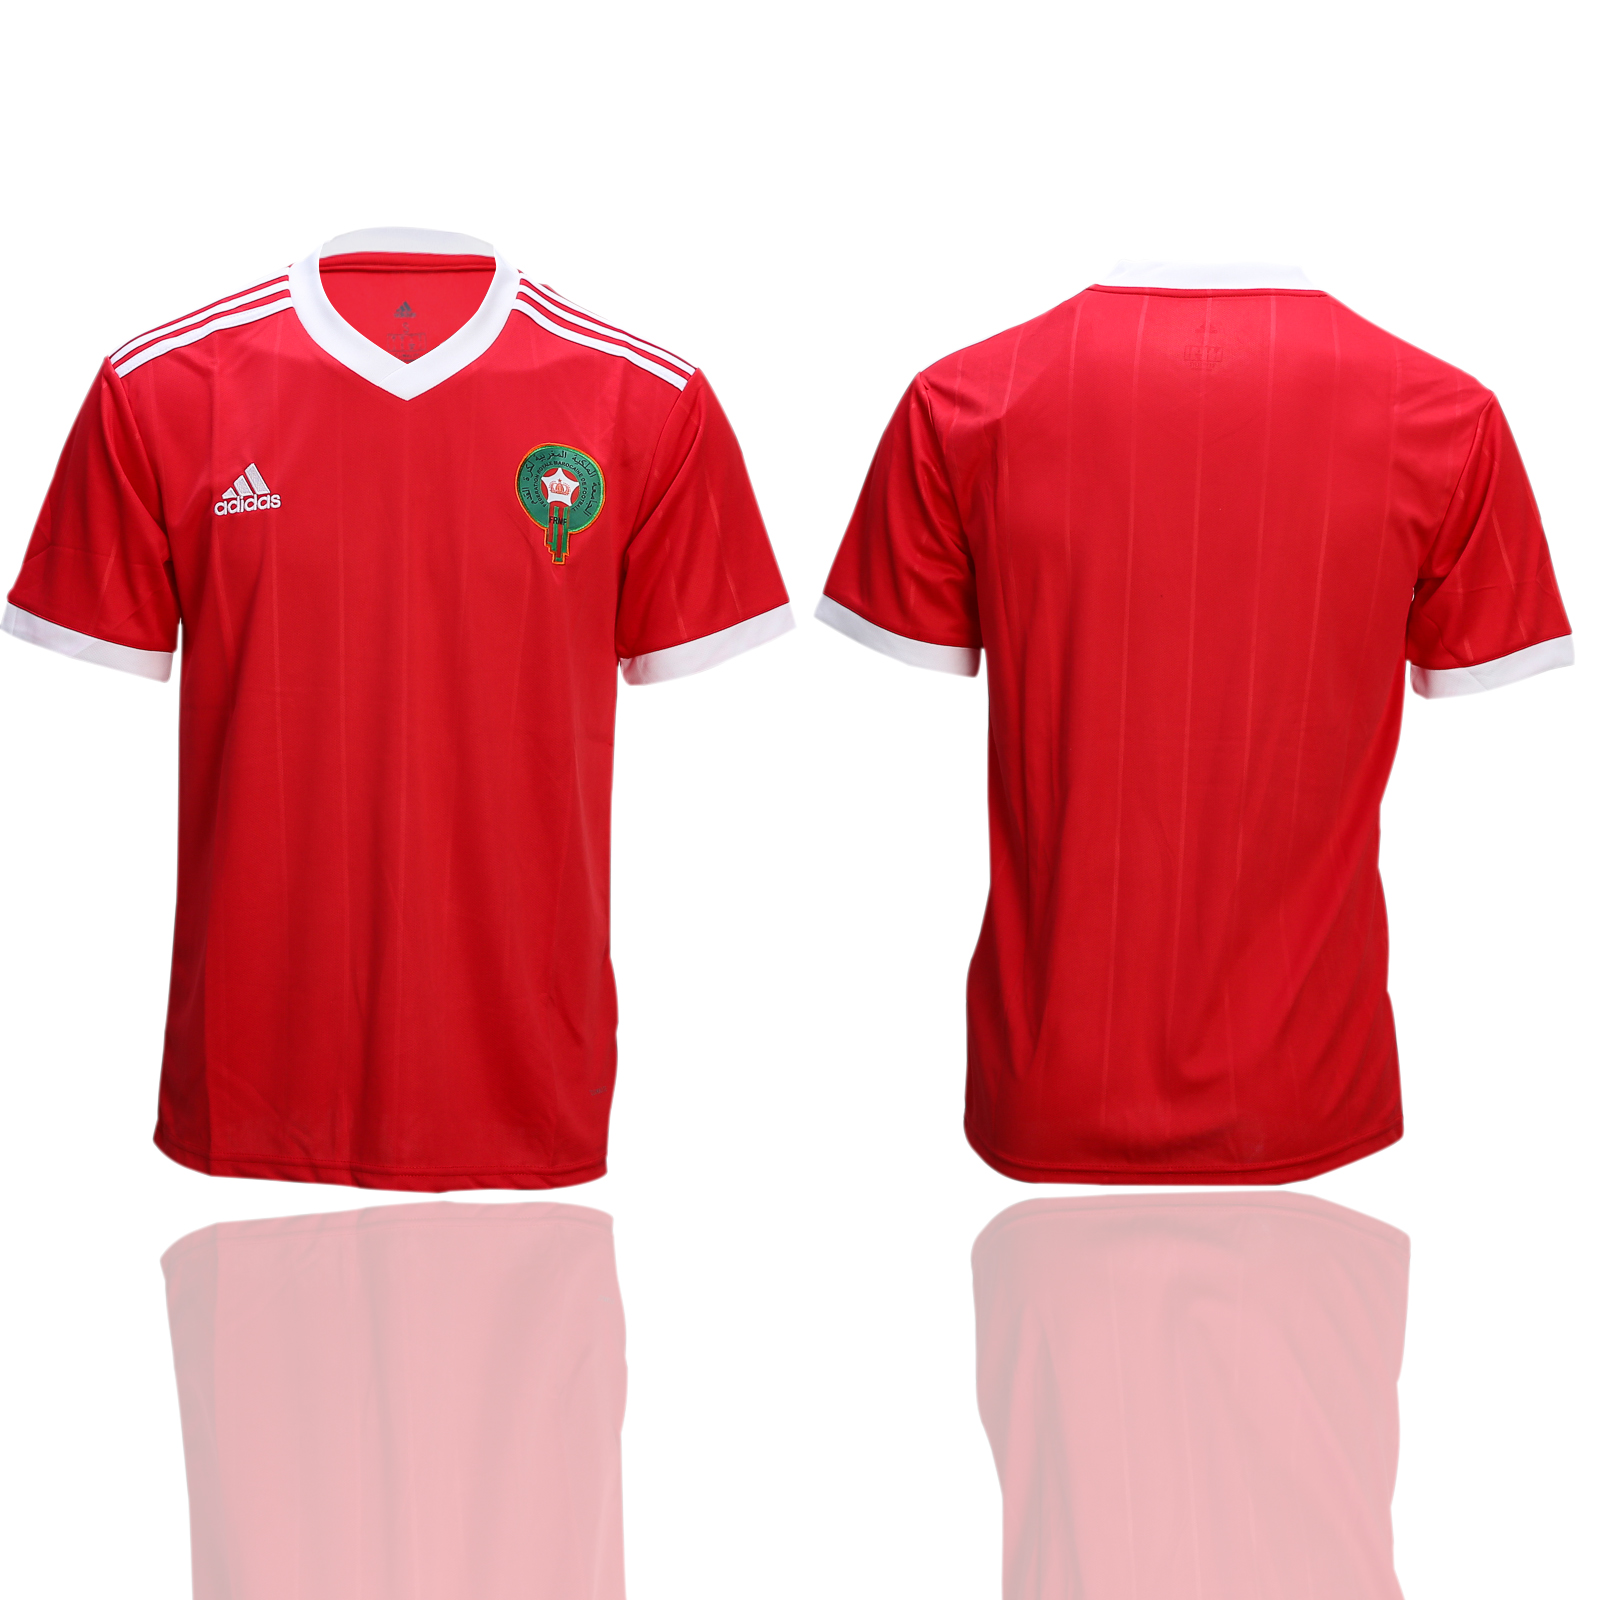 Morocco Home 2018 FIFA World Cup Thailand Soccer Jersey